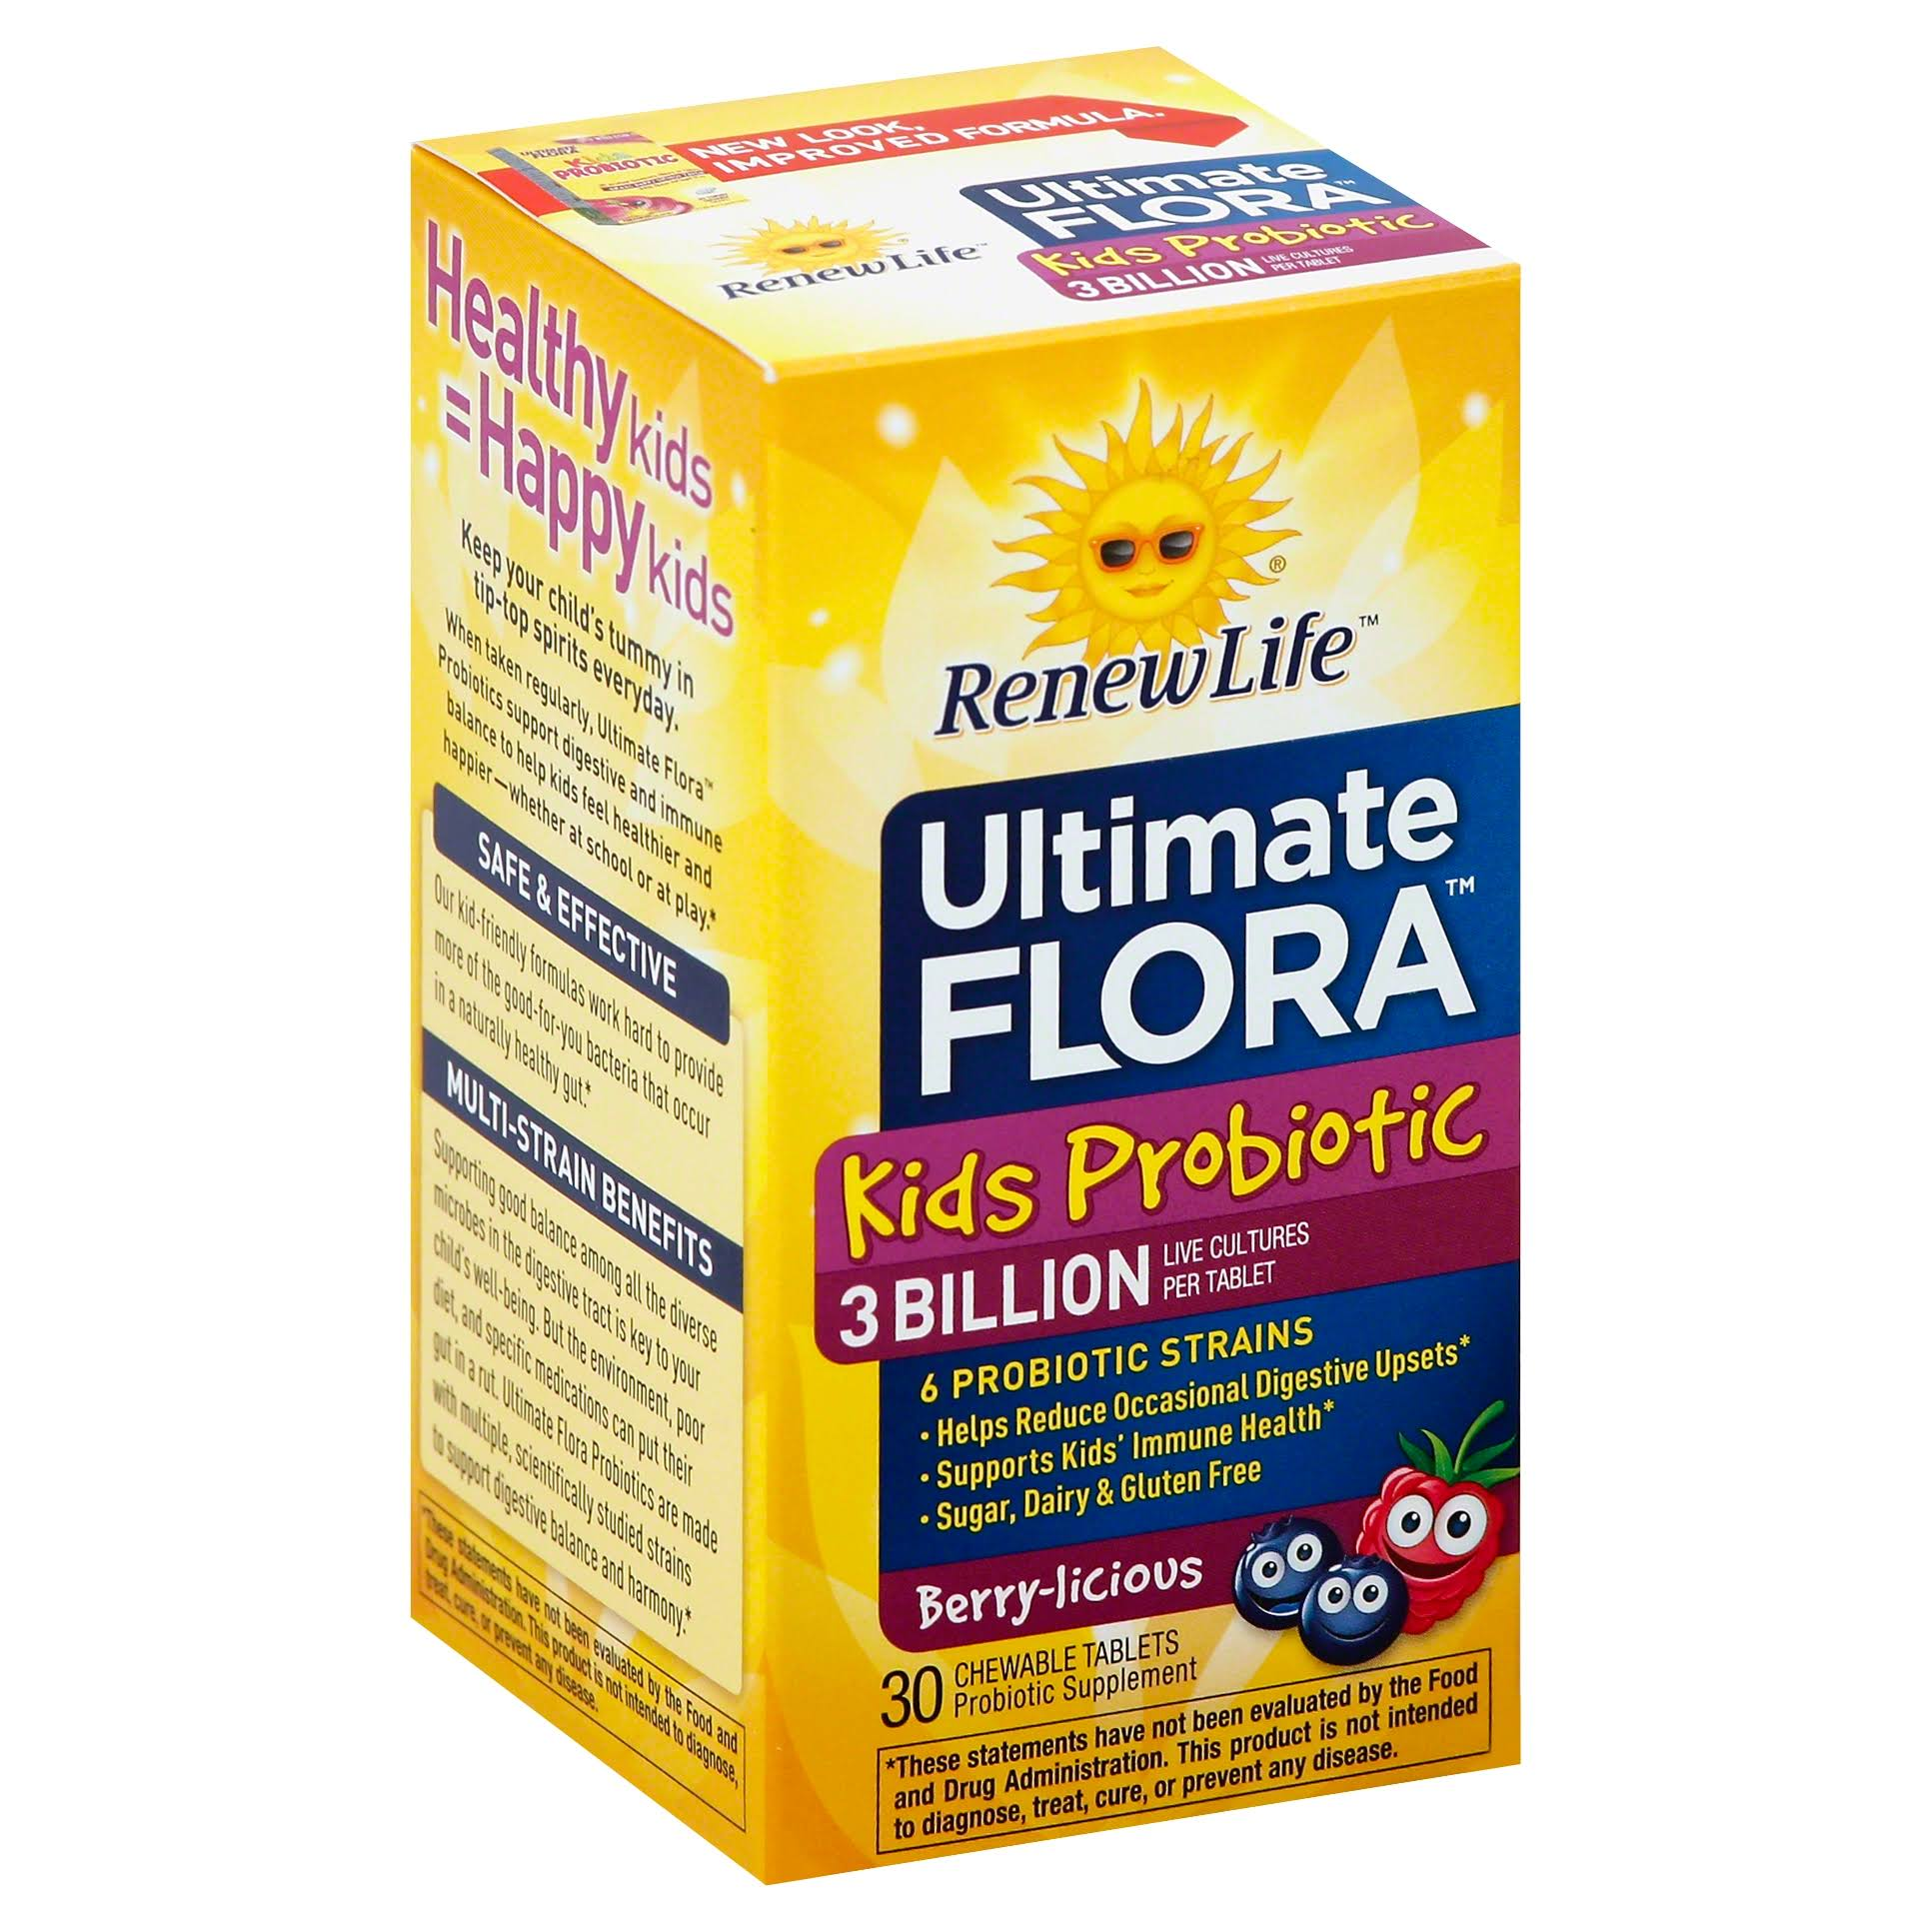 Renew Life Ultimate Flora Kids Probiotic